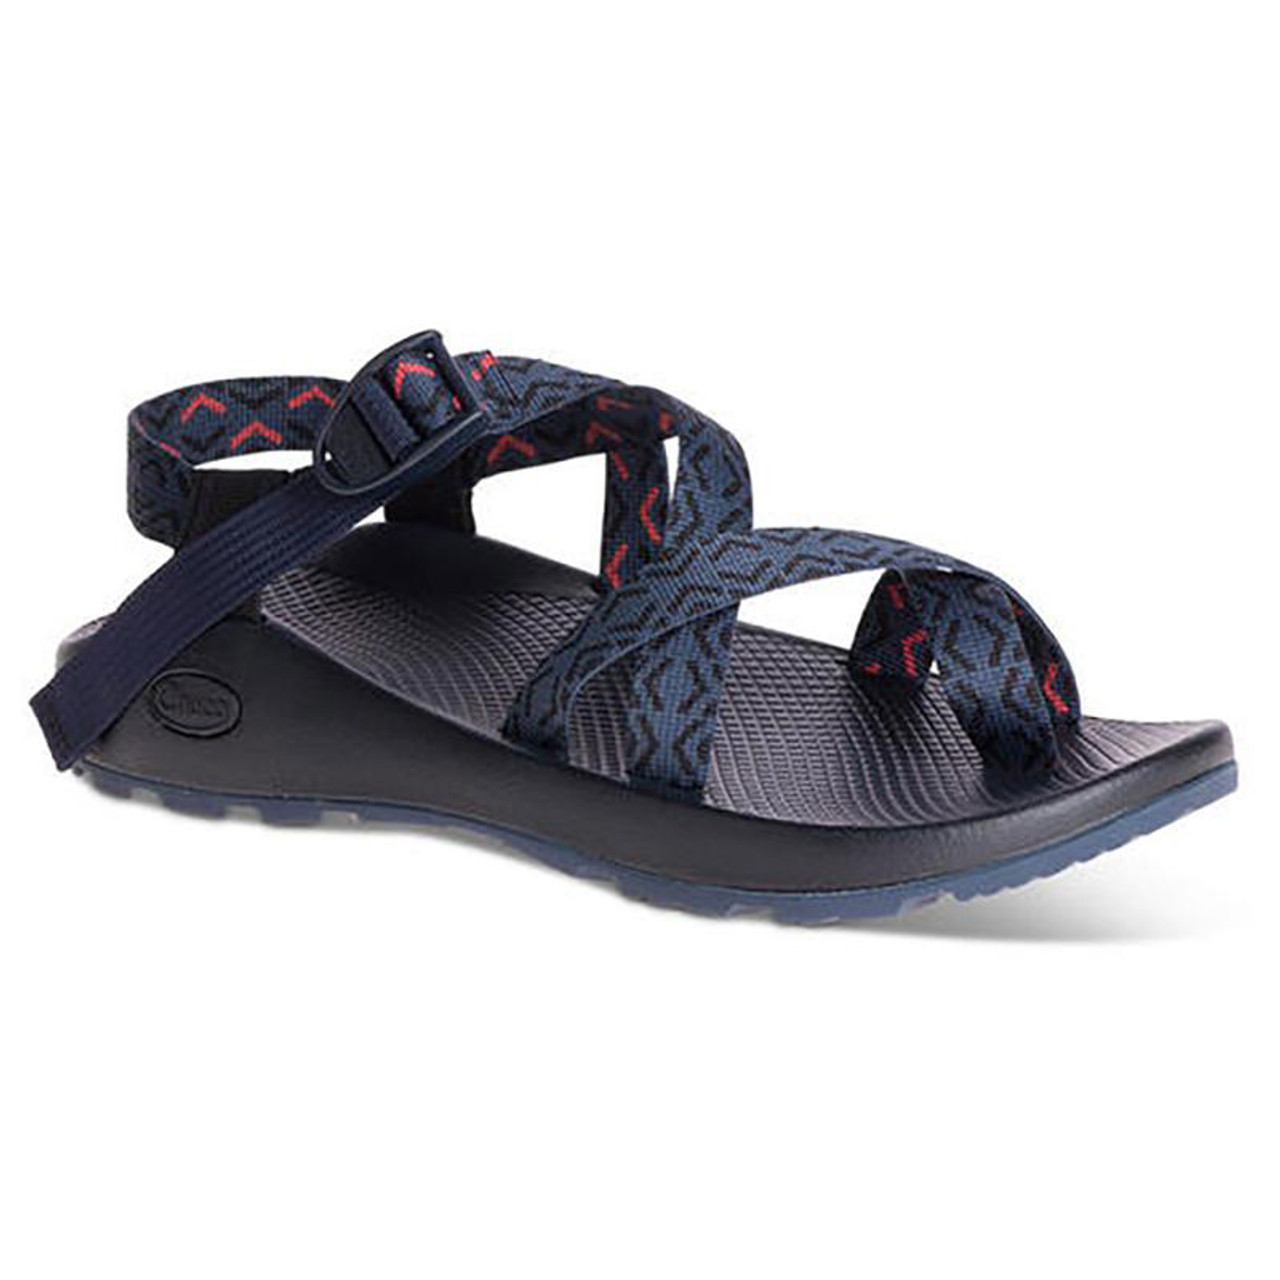 ba6d74a29866 Chaco Sandal - Z 2 Classic - Stepped Navy - Surf and Dirt